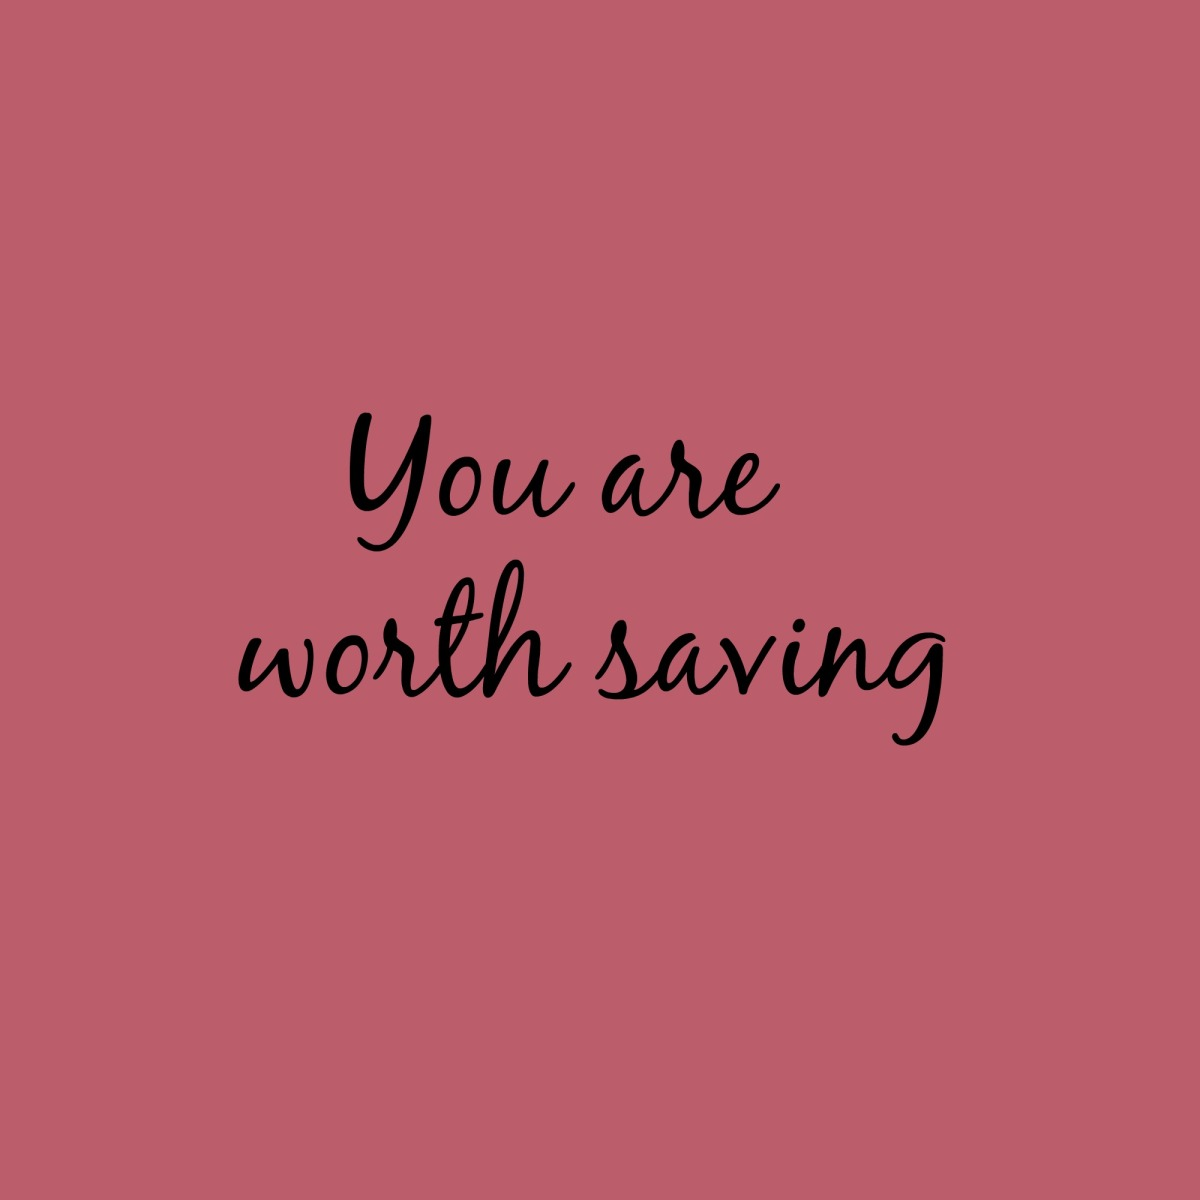 You are worth saving